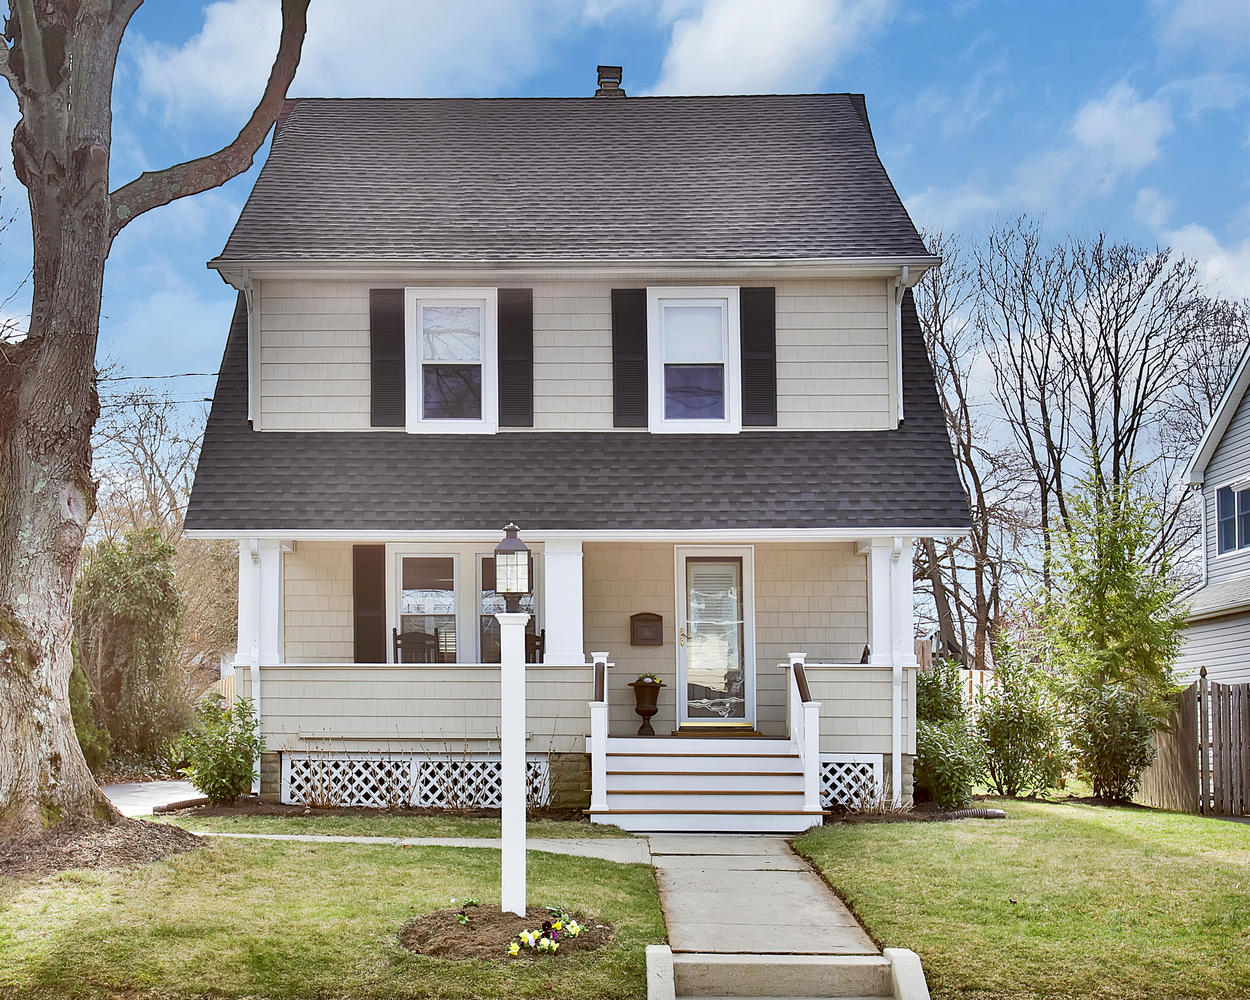 Single Family Home for Sale at Timeless Appeal 56 Lake Avenue Fair Haven, New Jersey 07704 United States